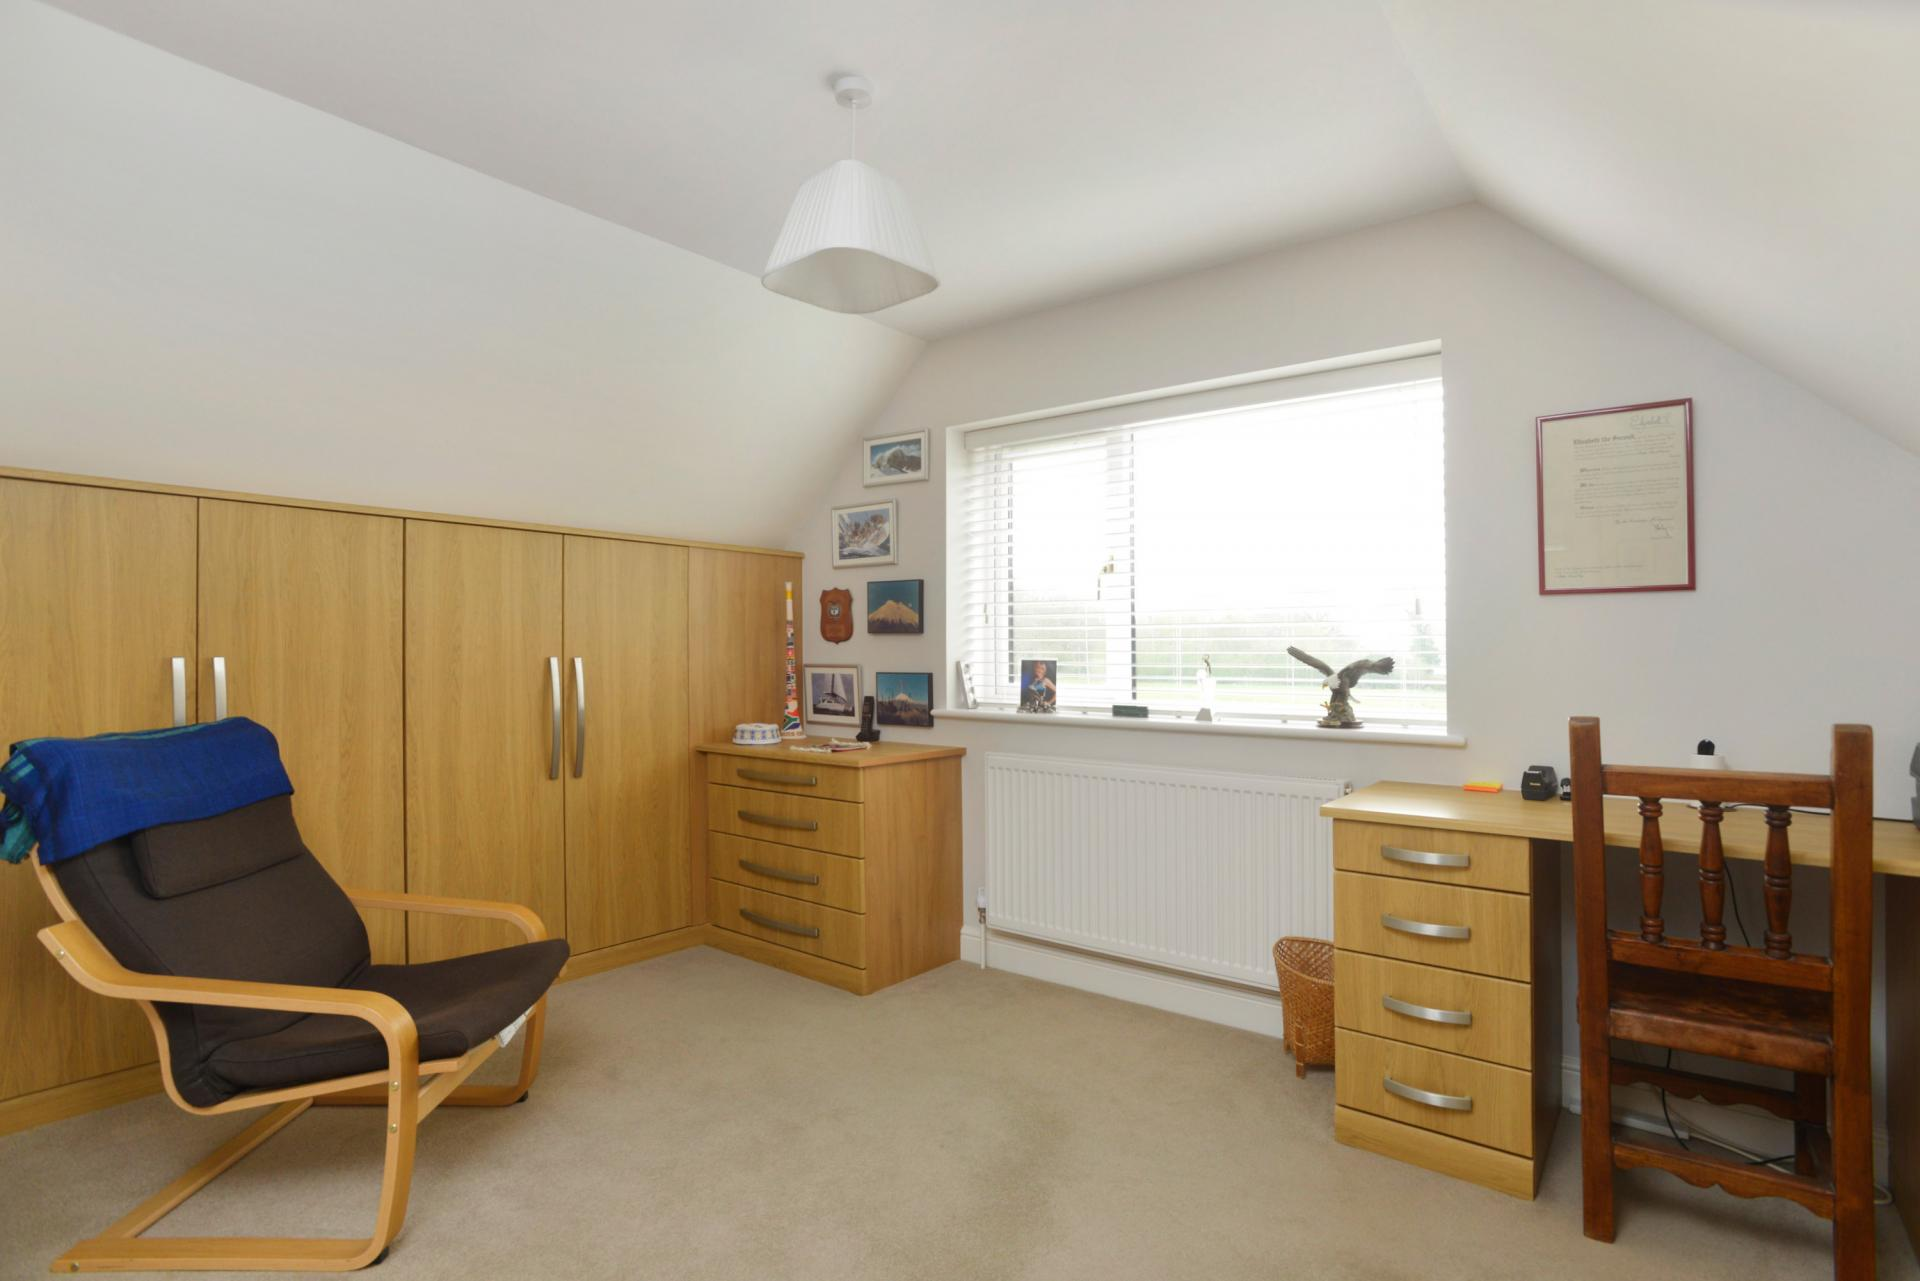 4 Bedroom Detached For Sale In Coventry